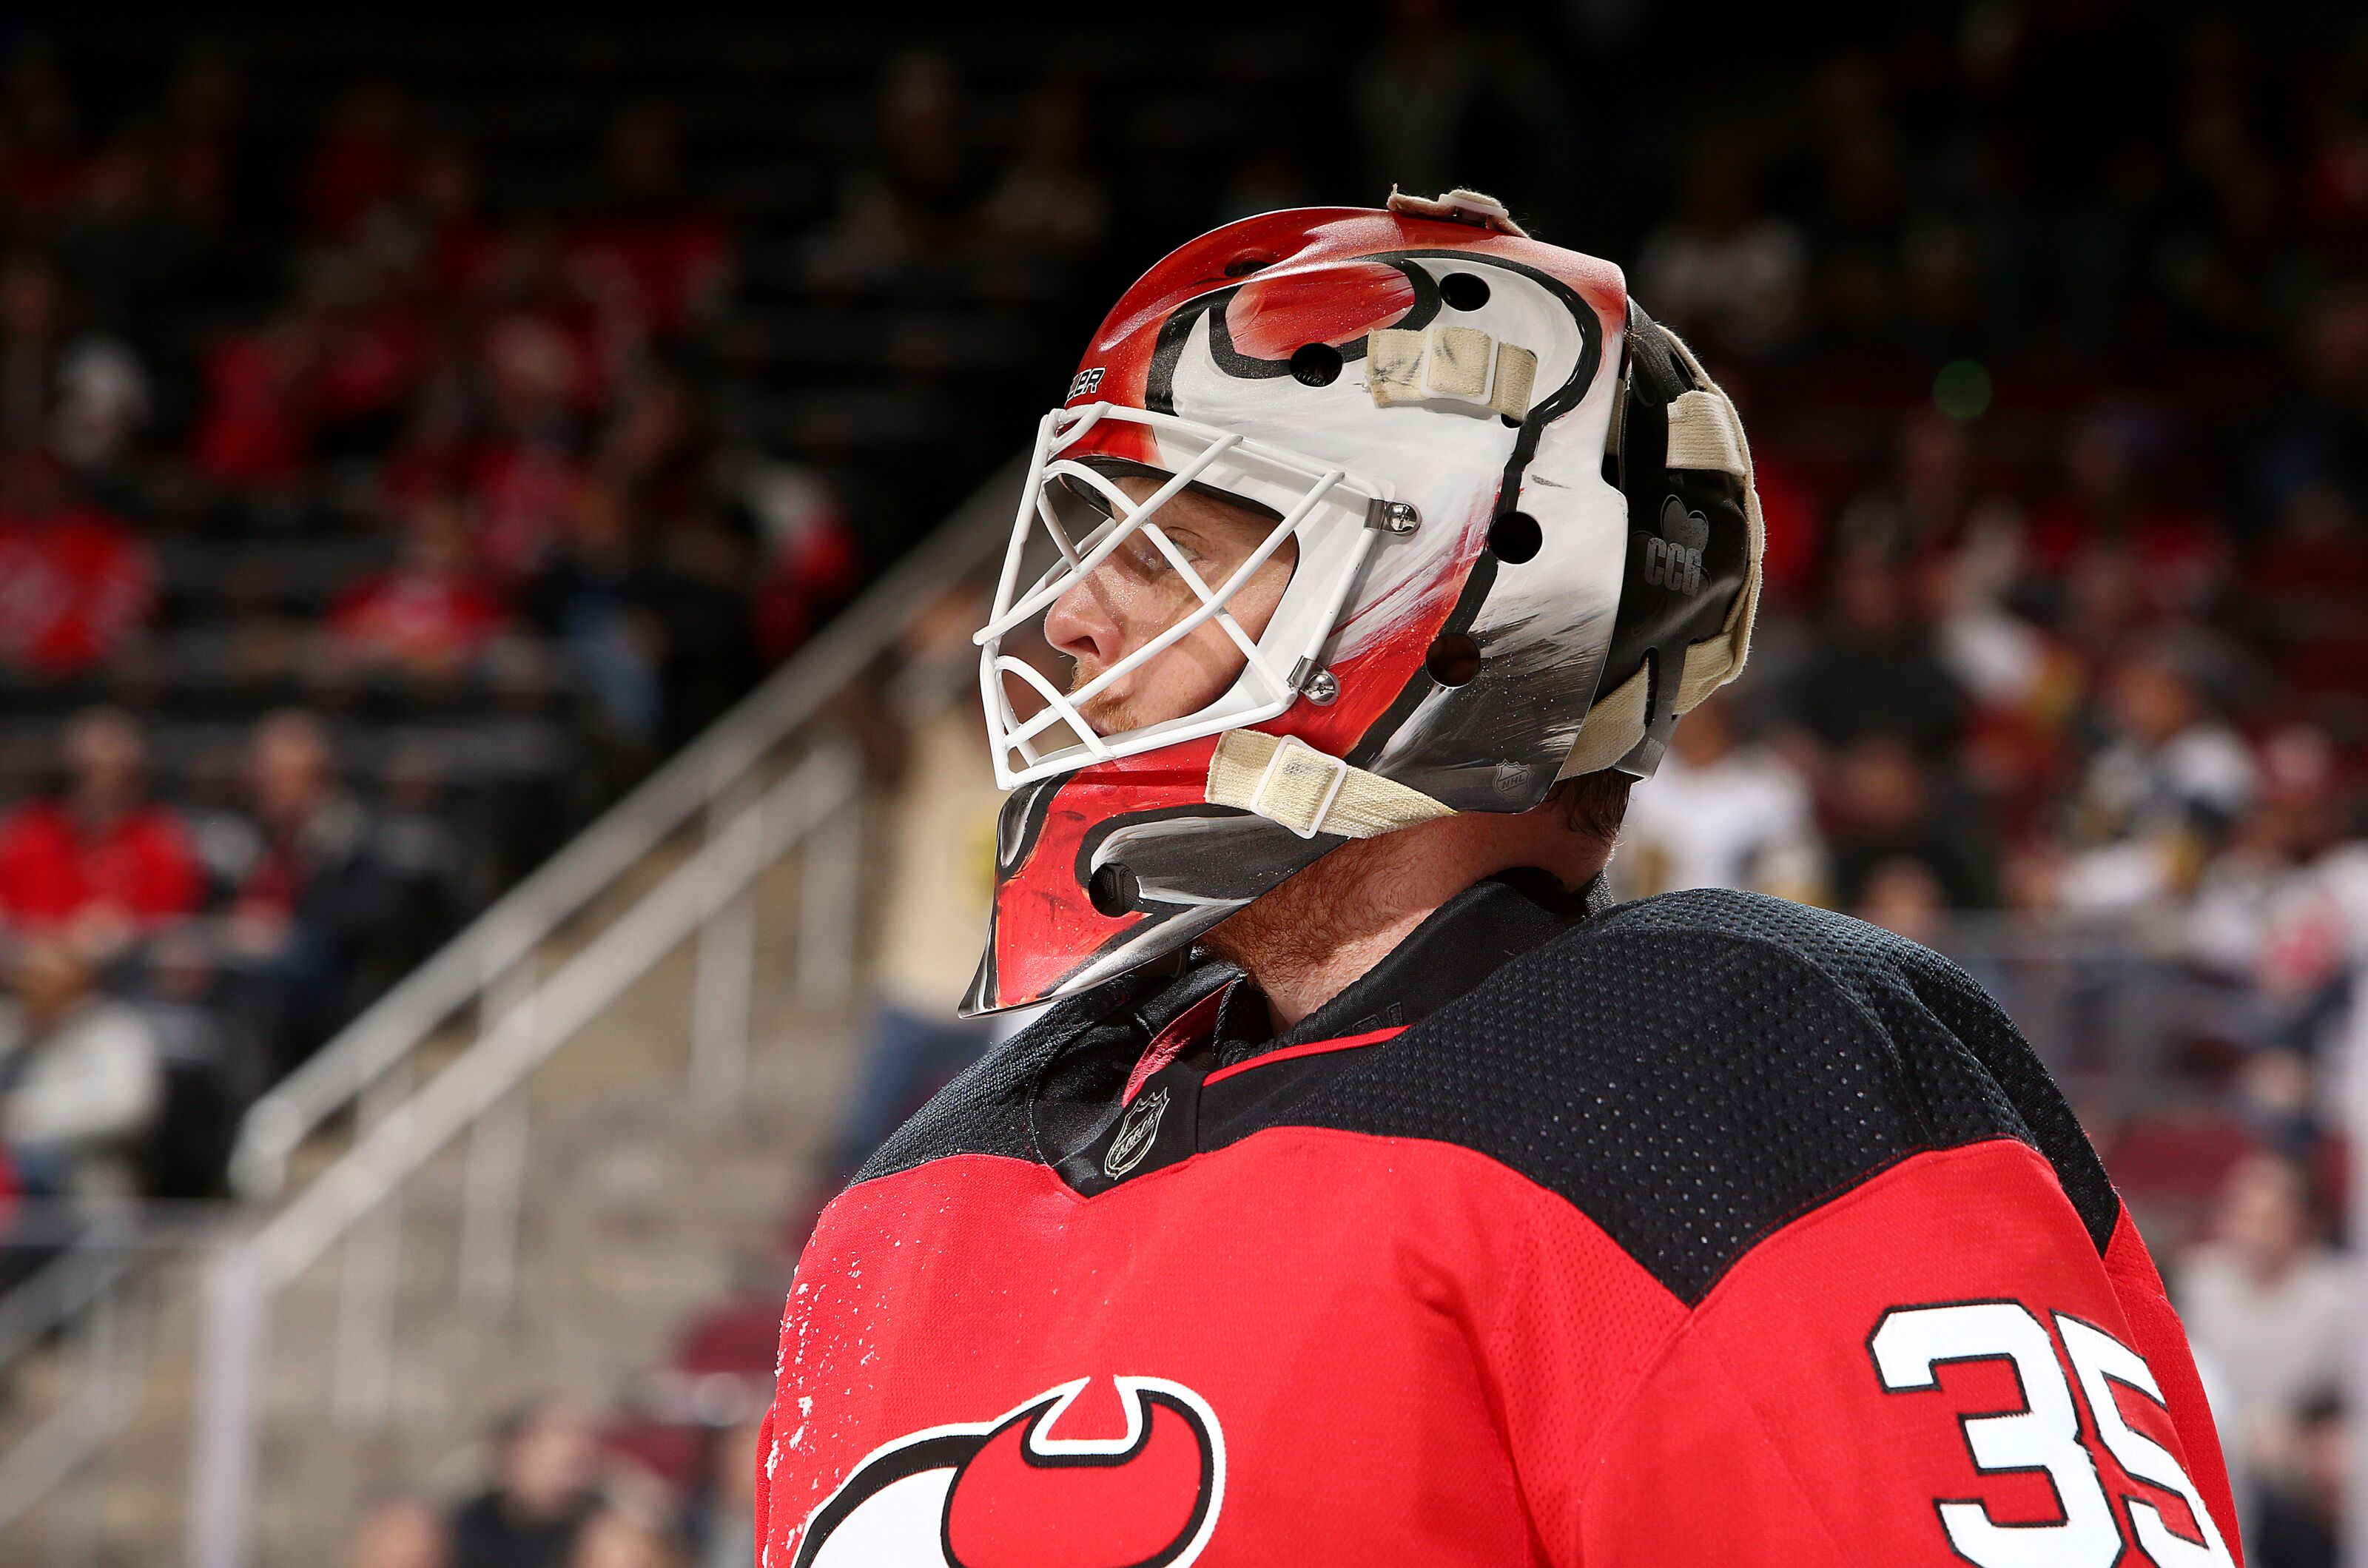 ddac4c638 New Jersey Devils: Is it time to move on from Cory Schneider?